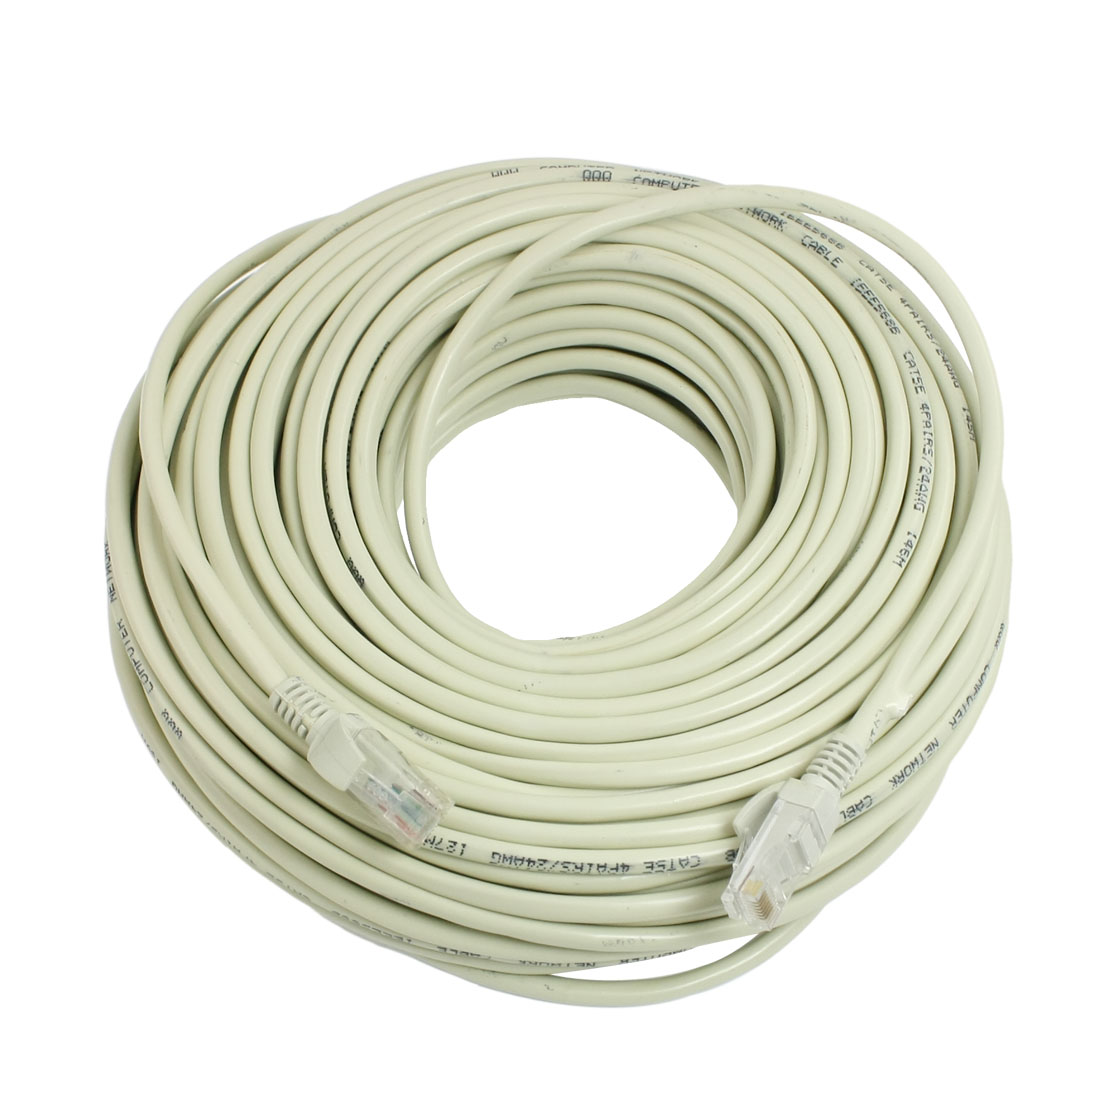 131 ft Feet 40M RJ45 CAT5E LAN Network Cable Off White for Ethernet Router Switch